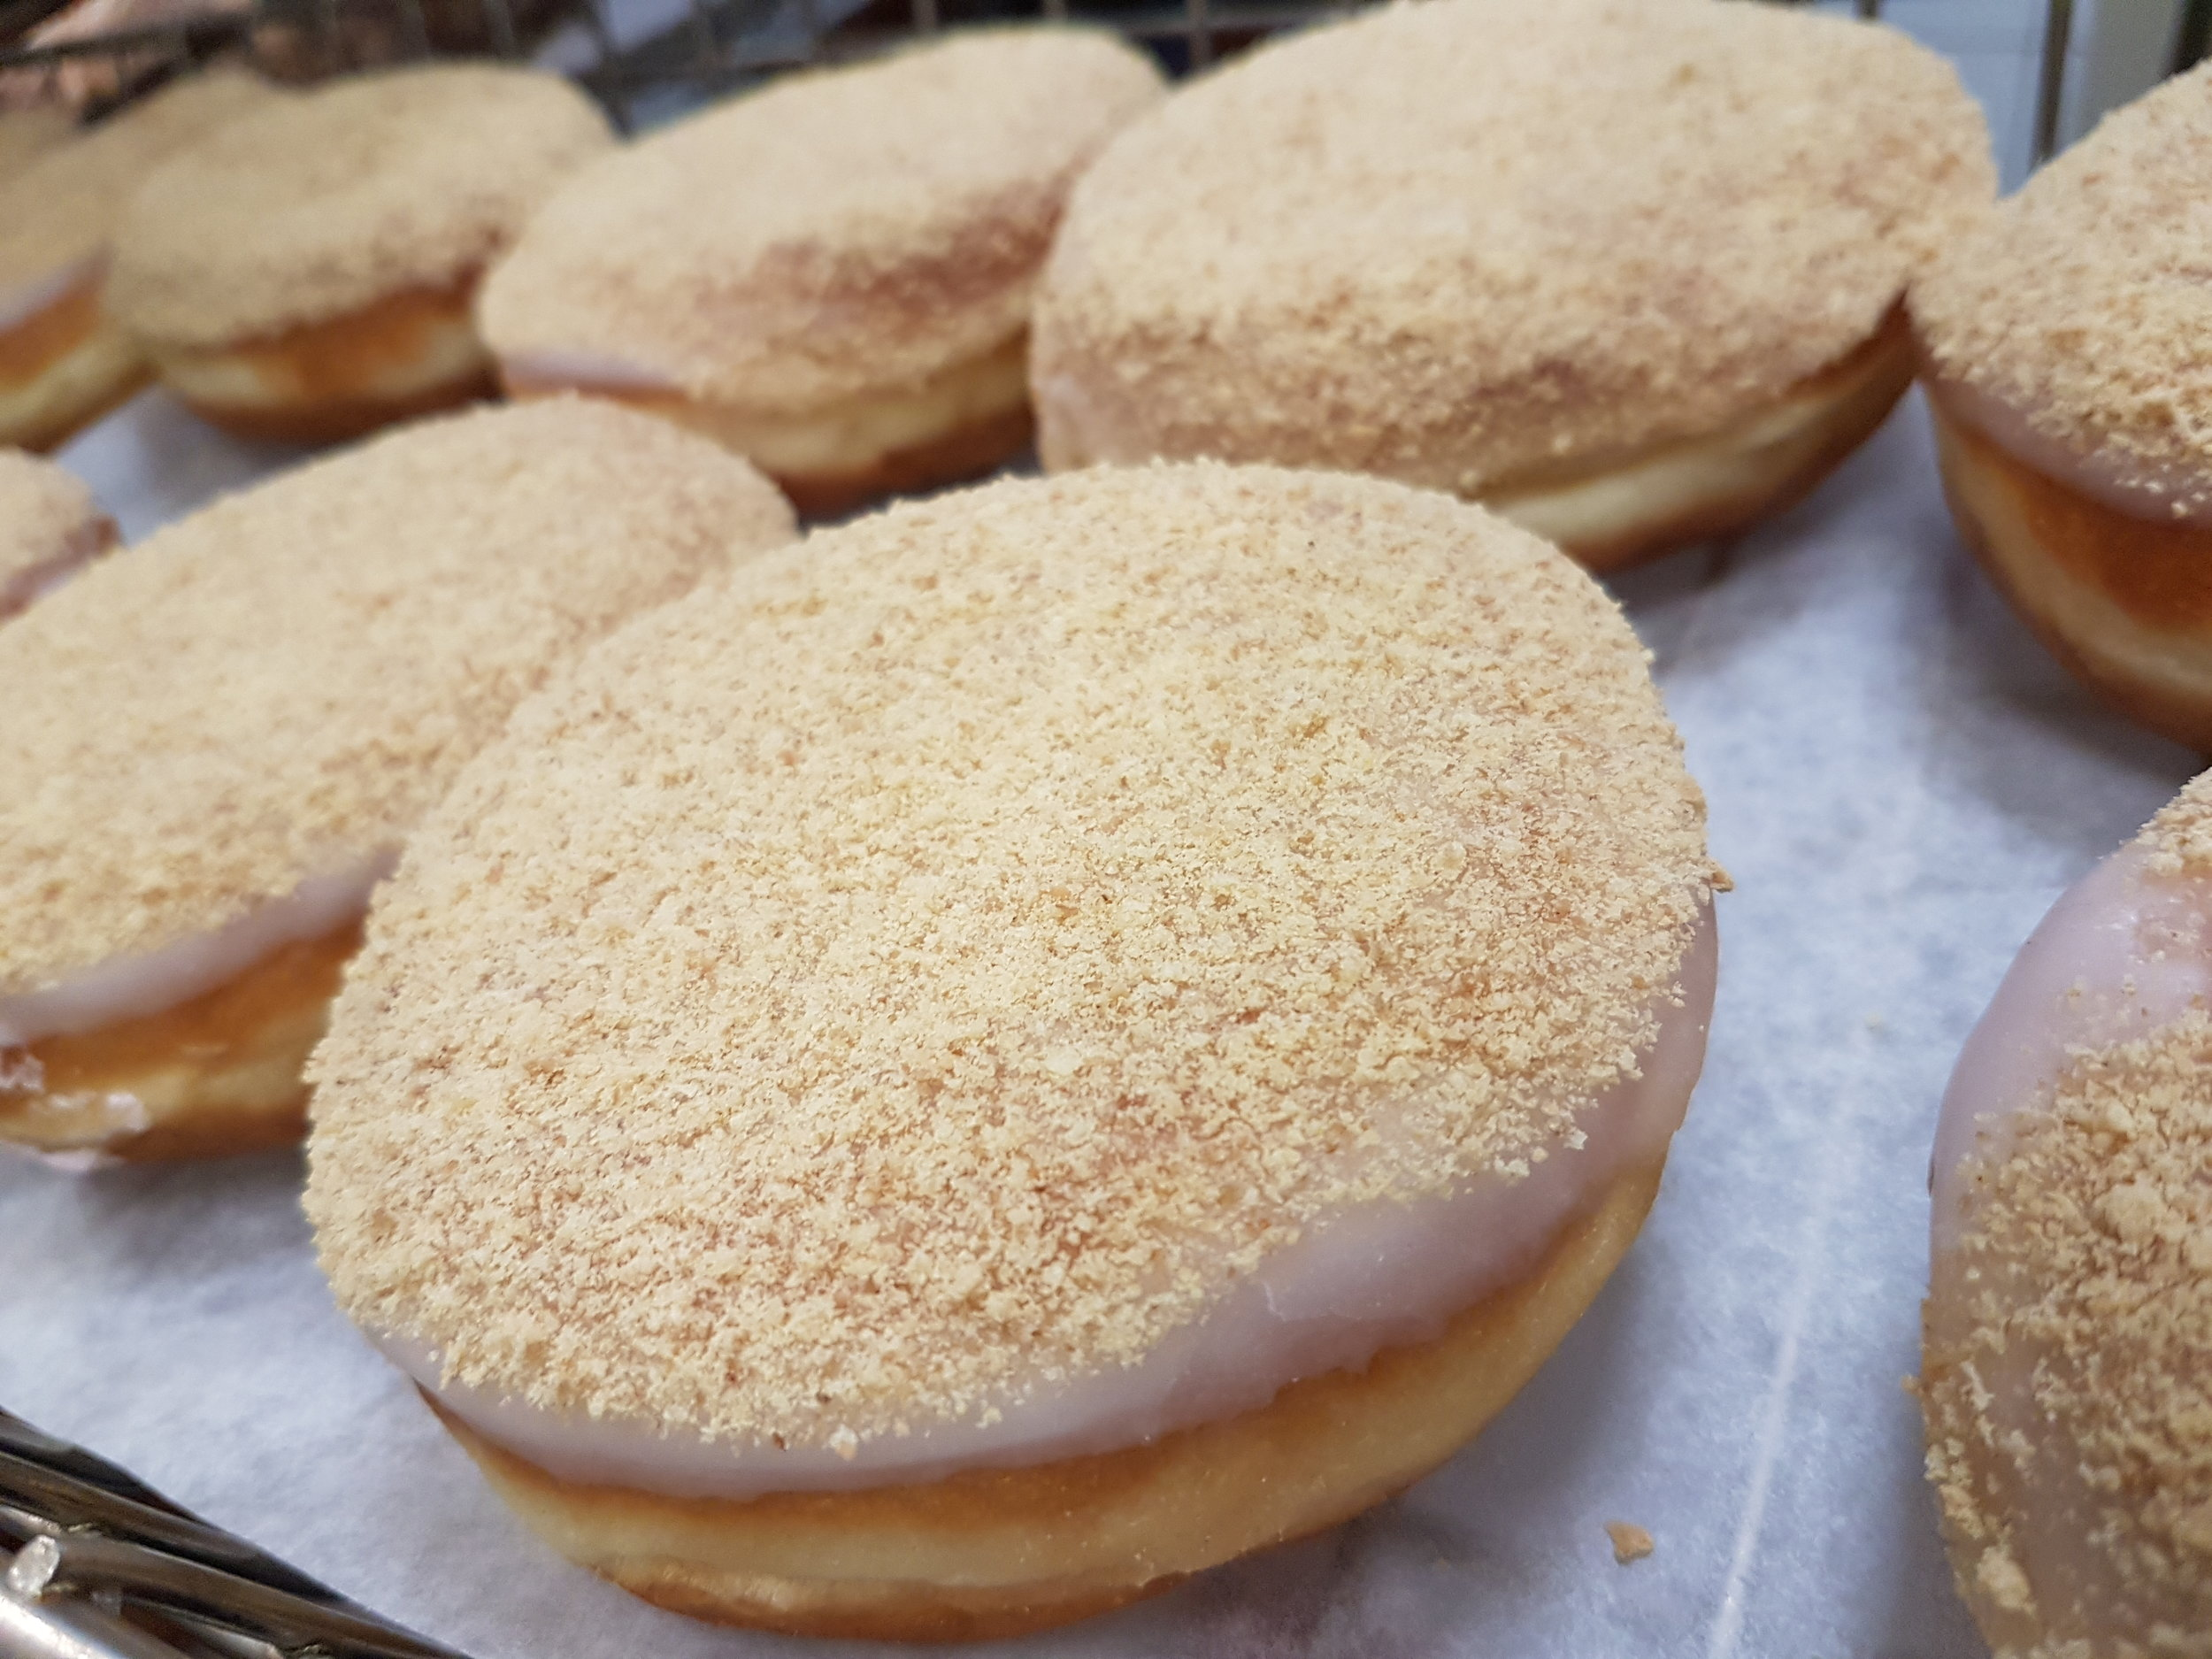 We stuff these yummy donuts with a cheery cheesecake flavoured whipped cream, and then finish them with white fondant and graham crumbs.  Amazingly delicious!